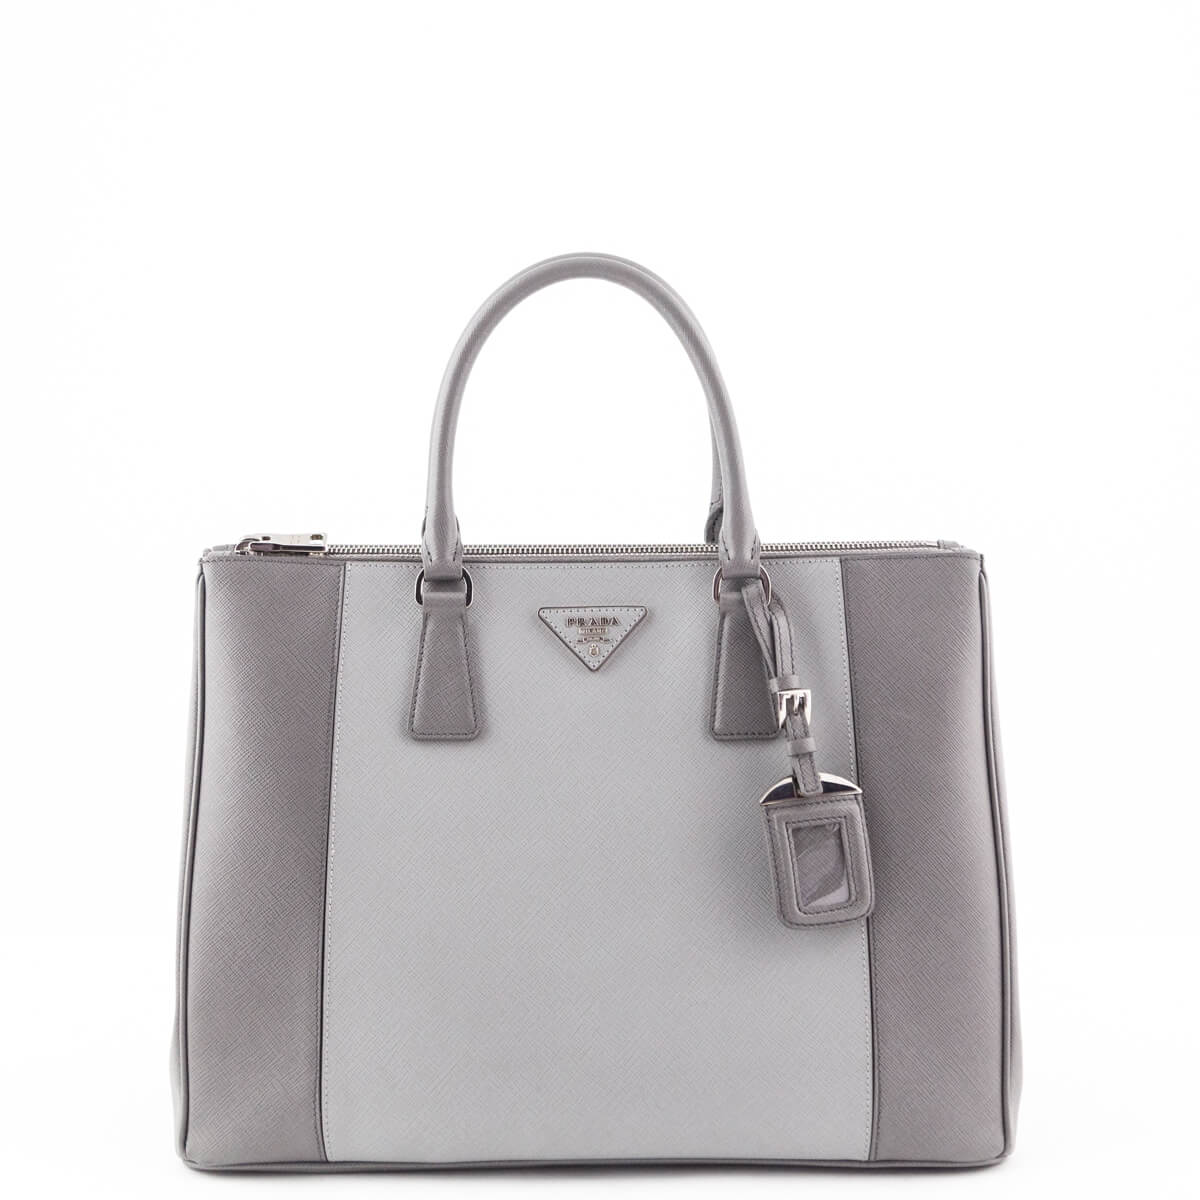 54f63a42803d Prada Marmo & Nube Saffiano Luxe Double Zip Tote - LOVE that BAG - Preowned  Authentic ...